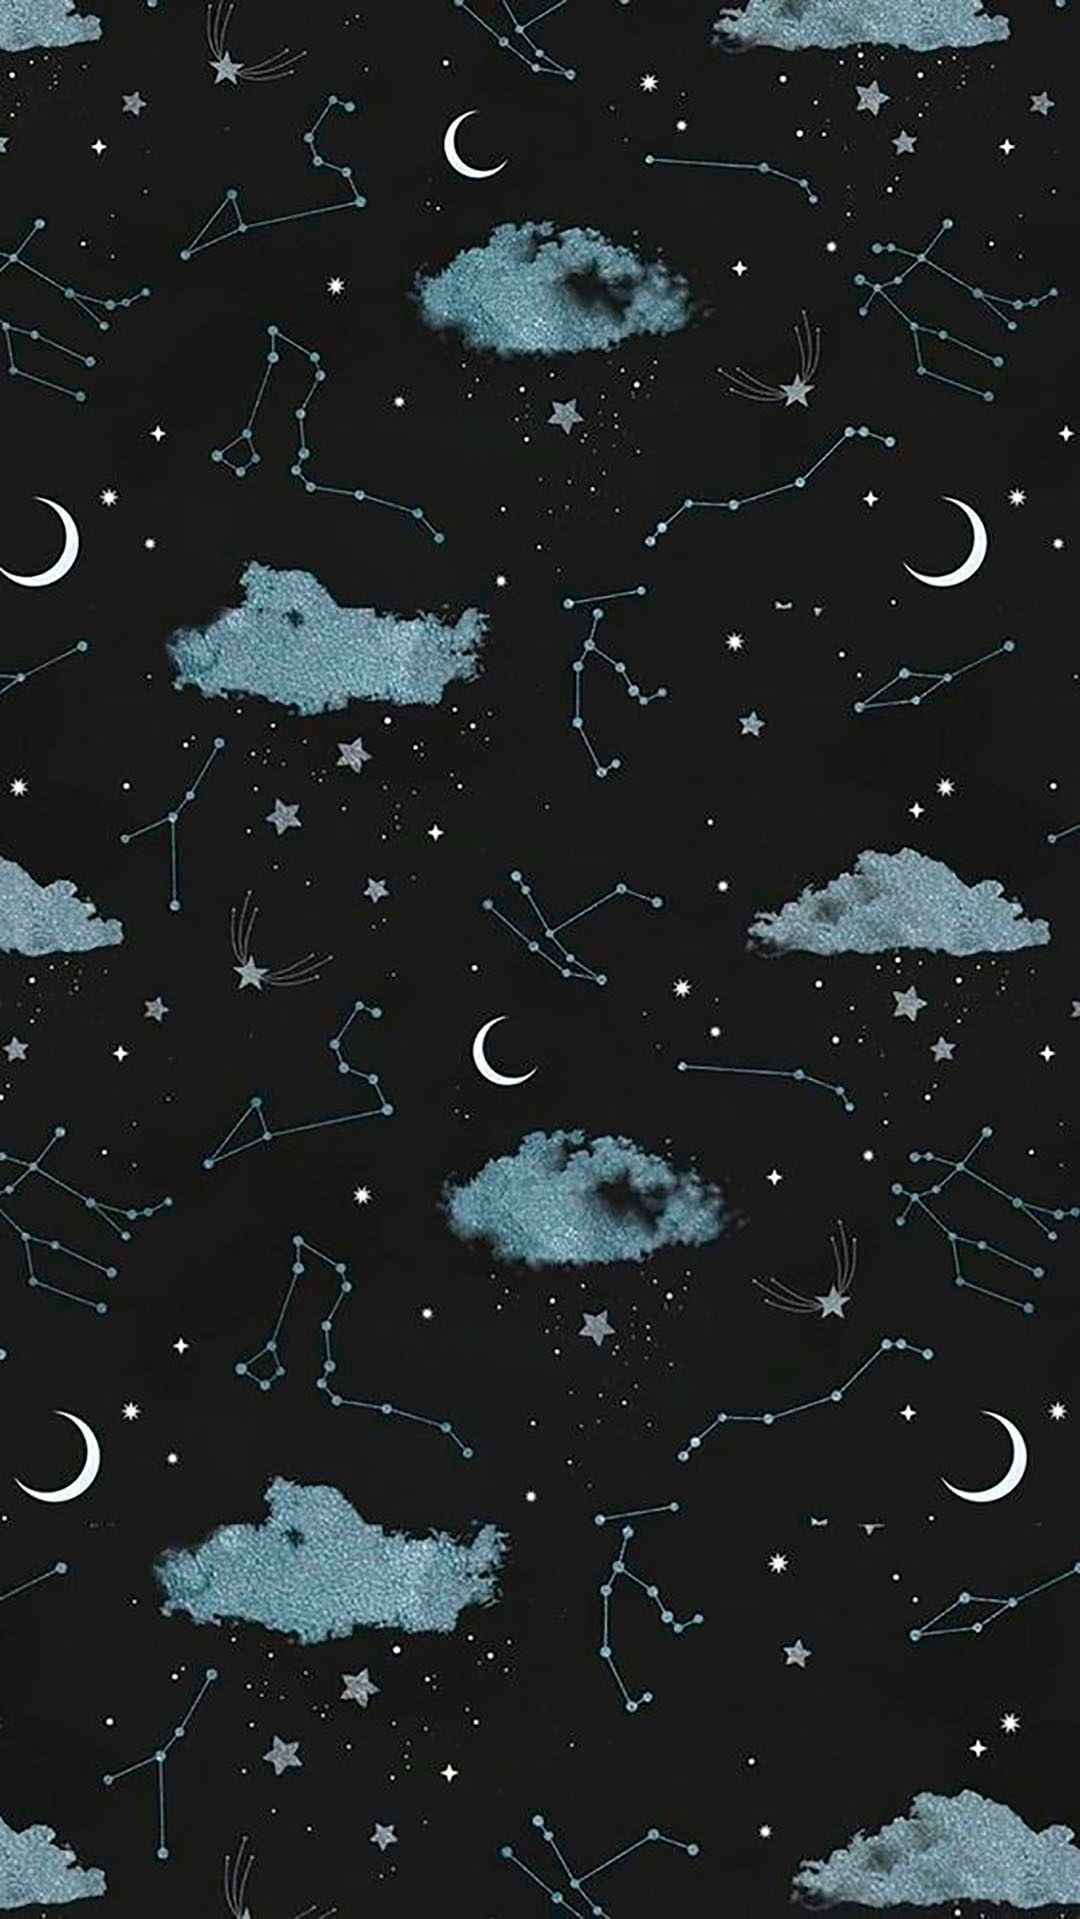 Trendy October Halloween Wallpaper Backgrounds For Your Iphone Night Sky Wallpaper Moon And Stars Wallpaper Halloween Wallpaper Backgrounds